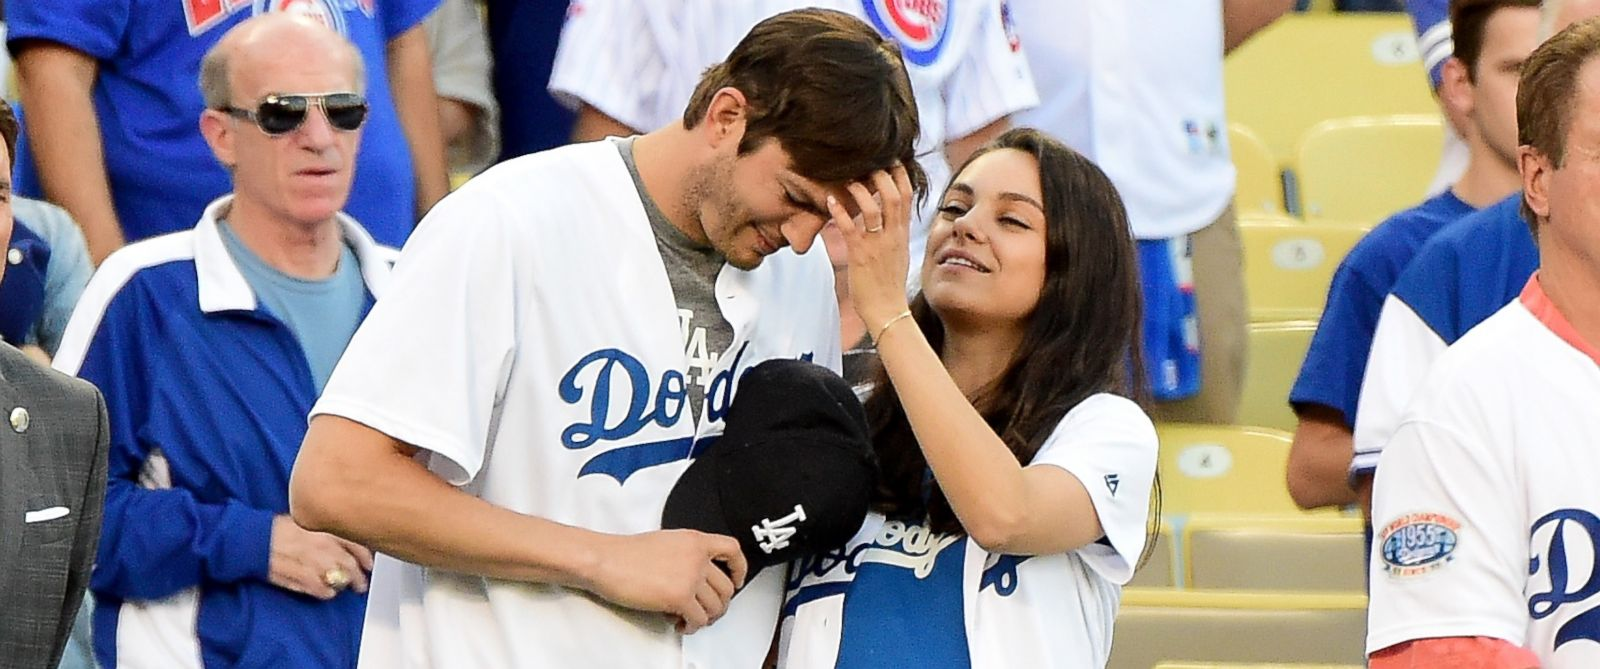 PHOTO: Ashton Kutcher and Mila Kunis on the field after they announced the Los Angeles Dodgers starting lineup before game four of the National League Championship Series, Oct. 19, 2016, in Los Angeles.